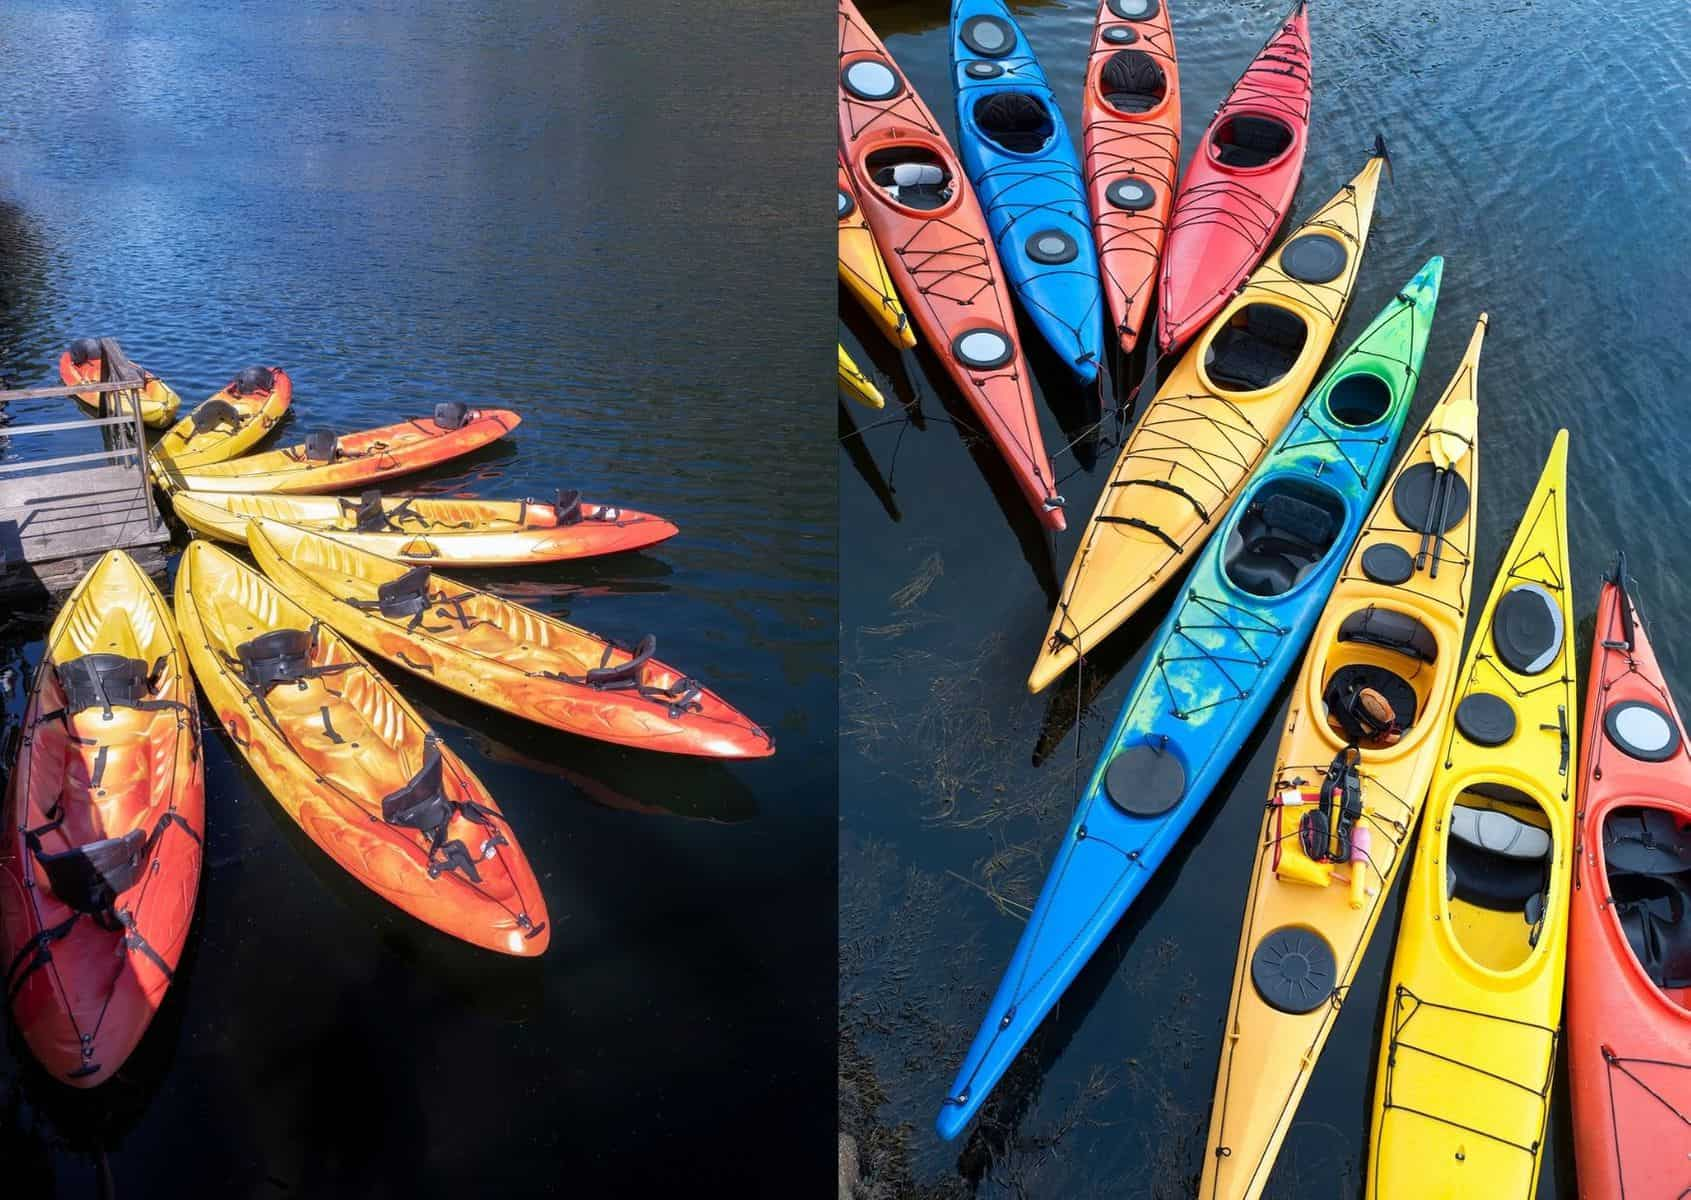 sit on versus sit in kayaks